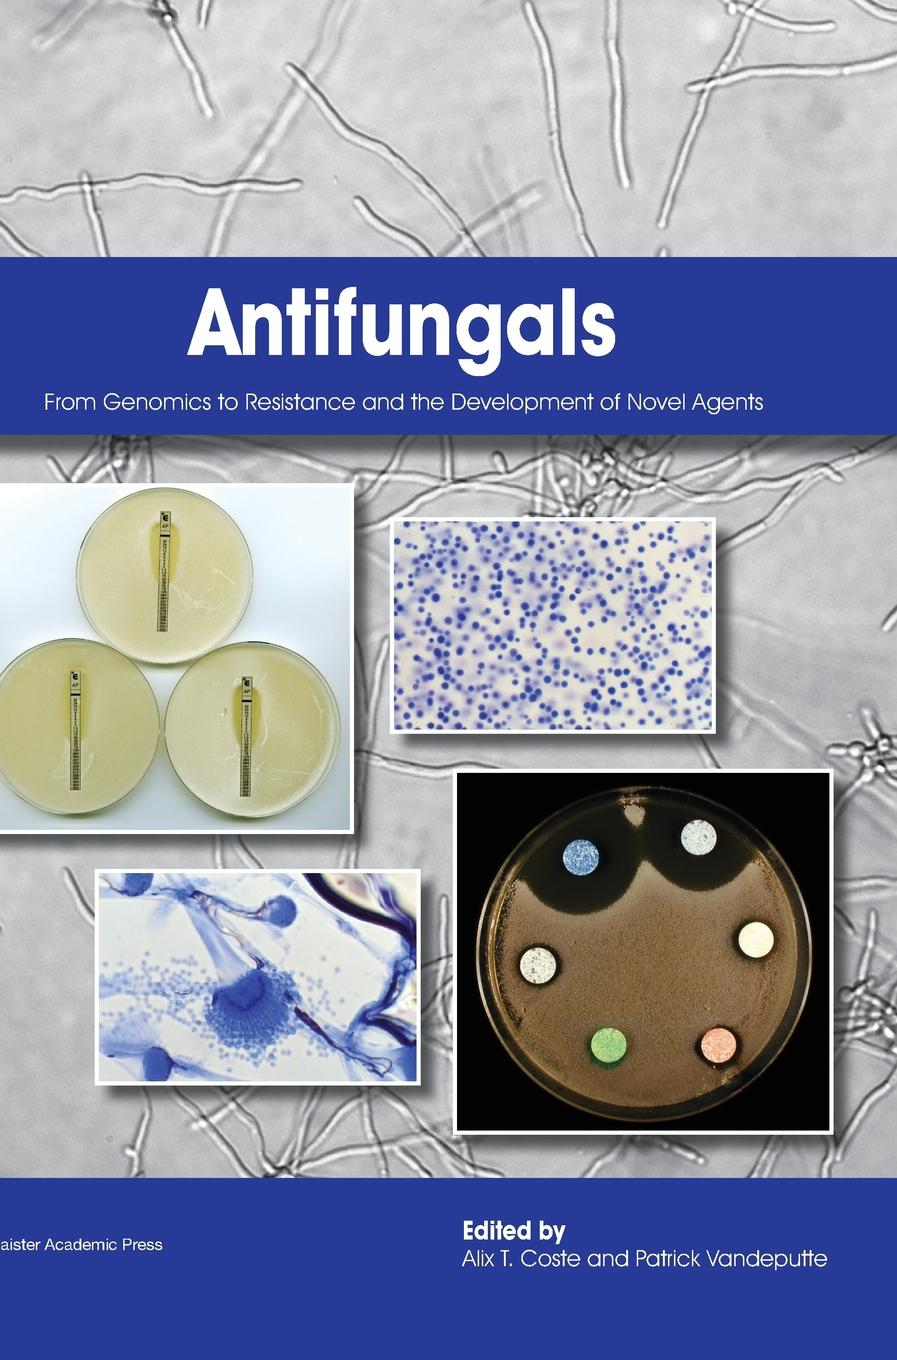 Antifungals: From Genomics to Resistance and the Development of Novel Agents